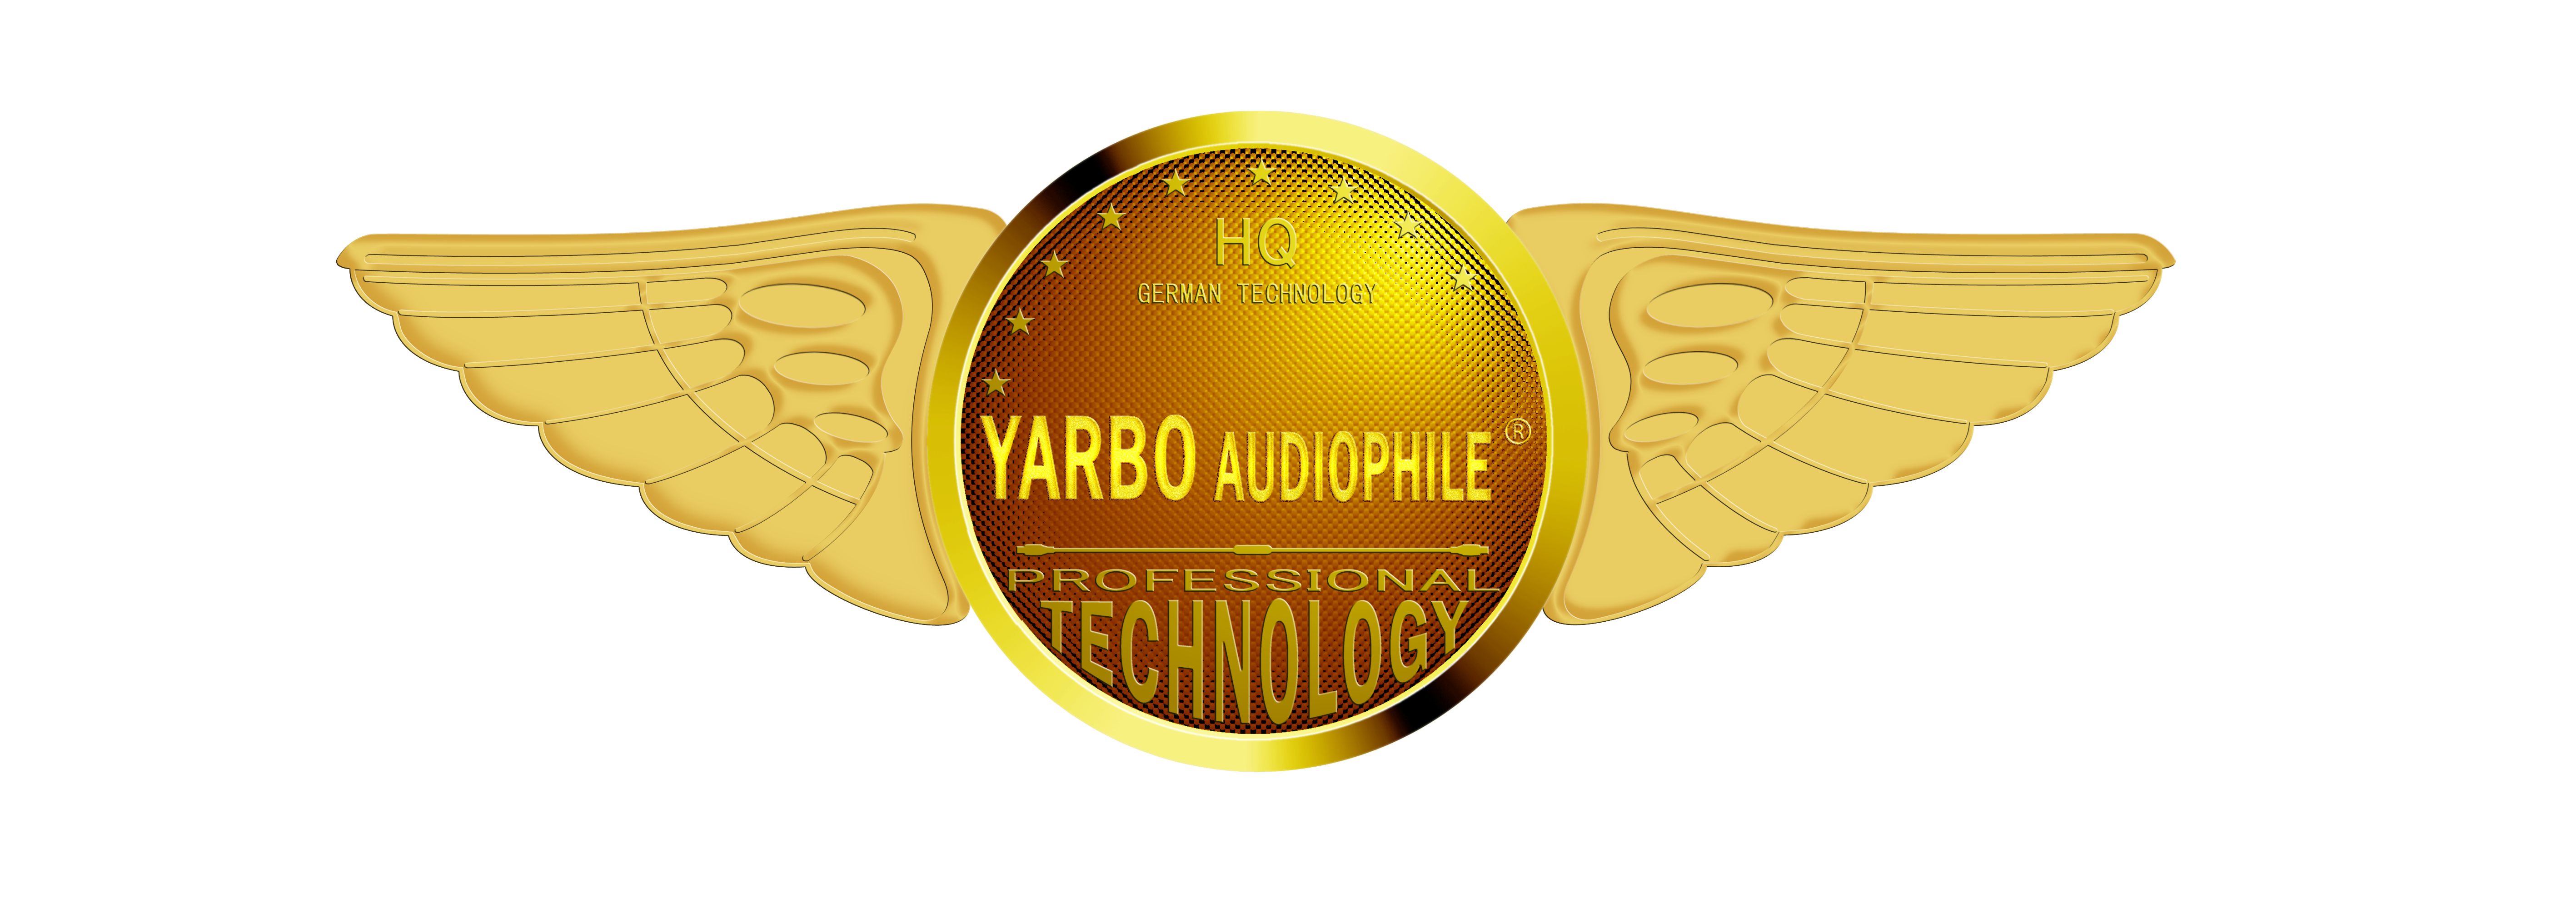 YARBO AUDIOPHILE